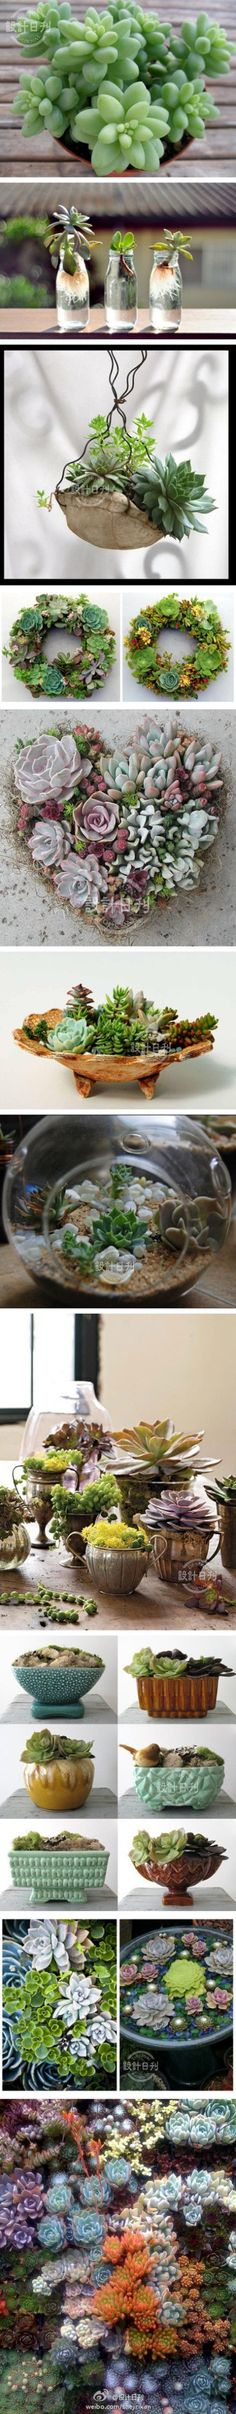 """suculentas* love them for """"live"""" decor Succulent Gardening, Cacti And Succulents, Planting Succulents, Container Gardening, Planting Flowers, Succulent Ideas, Succulent Terrarium, Succulent Decorations, Succulent Display"""